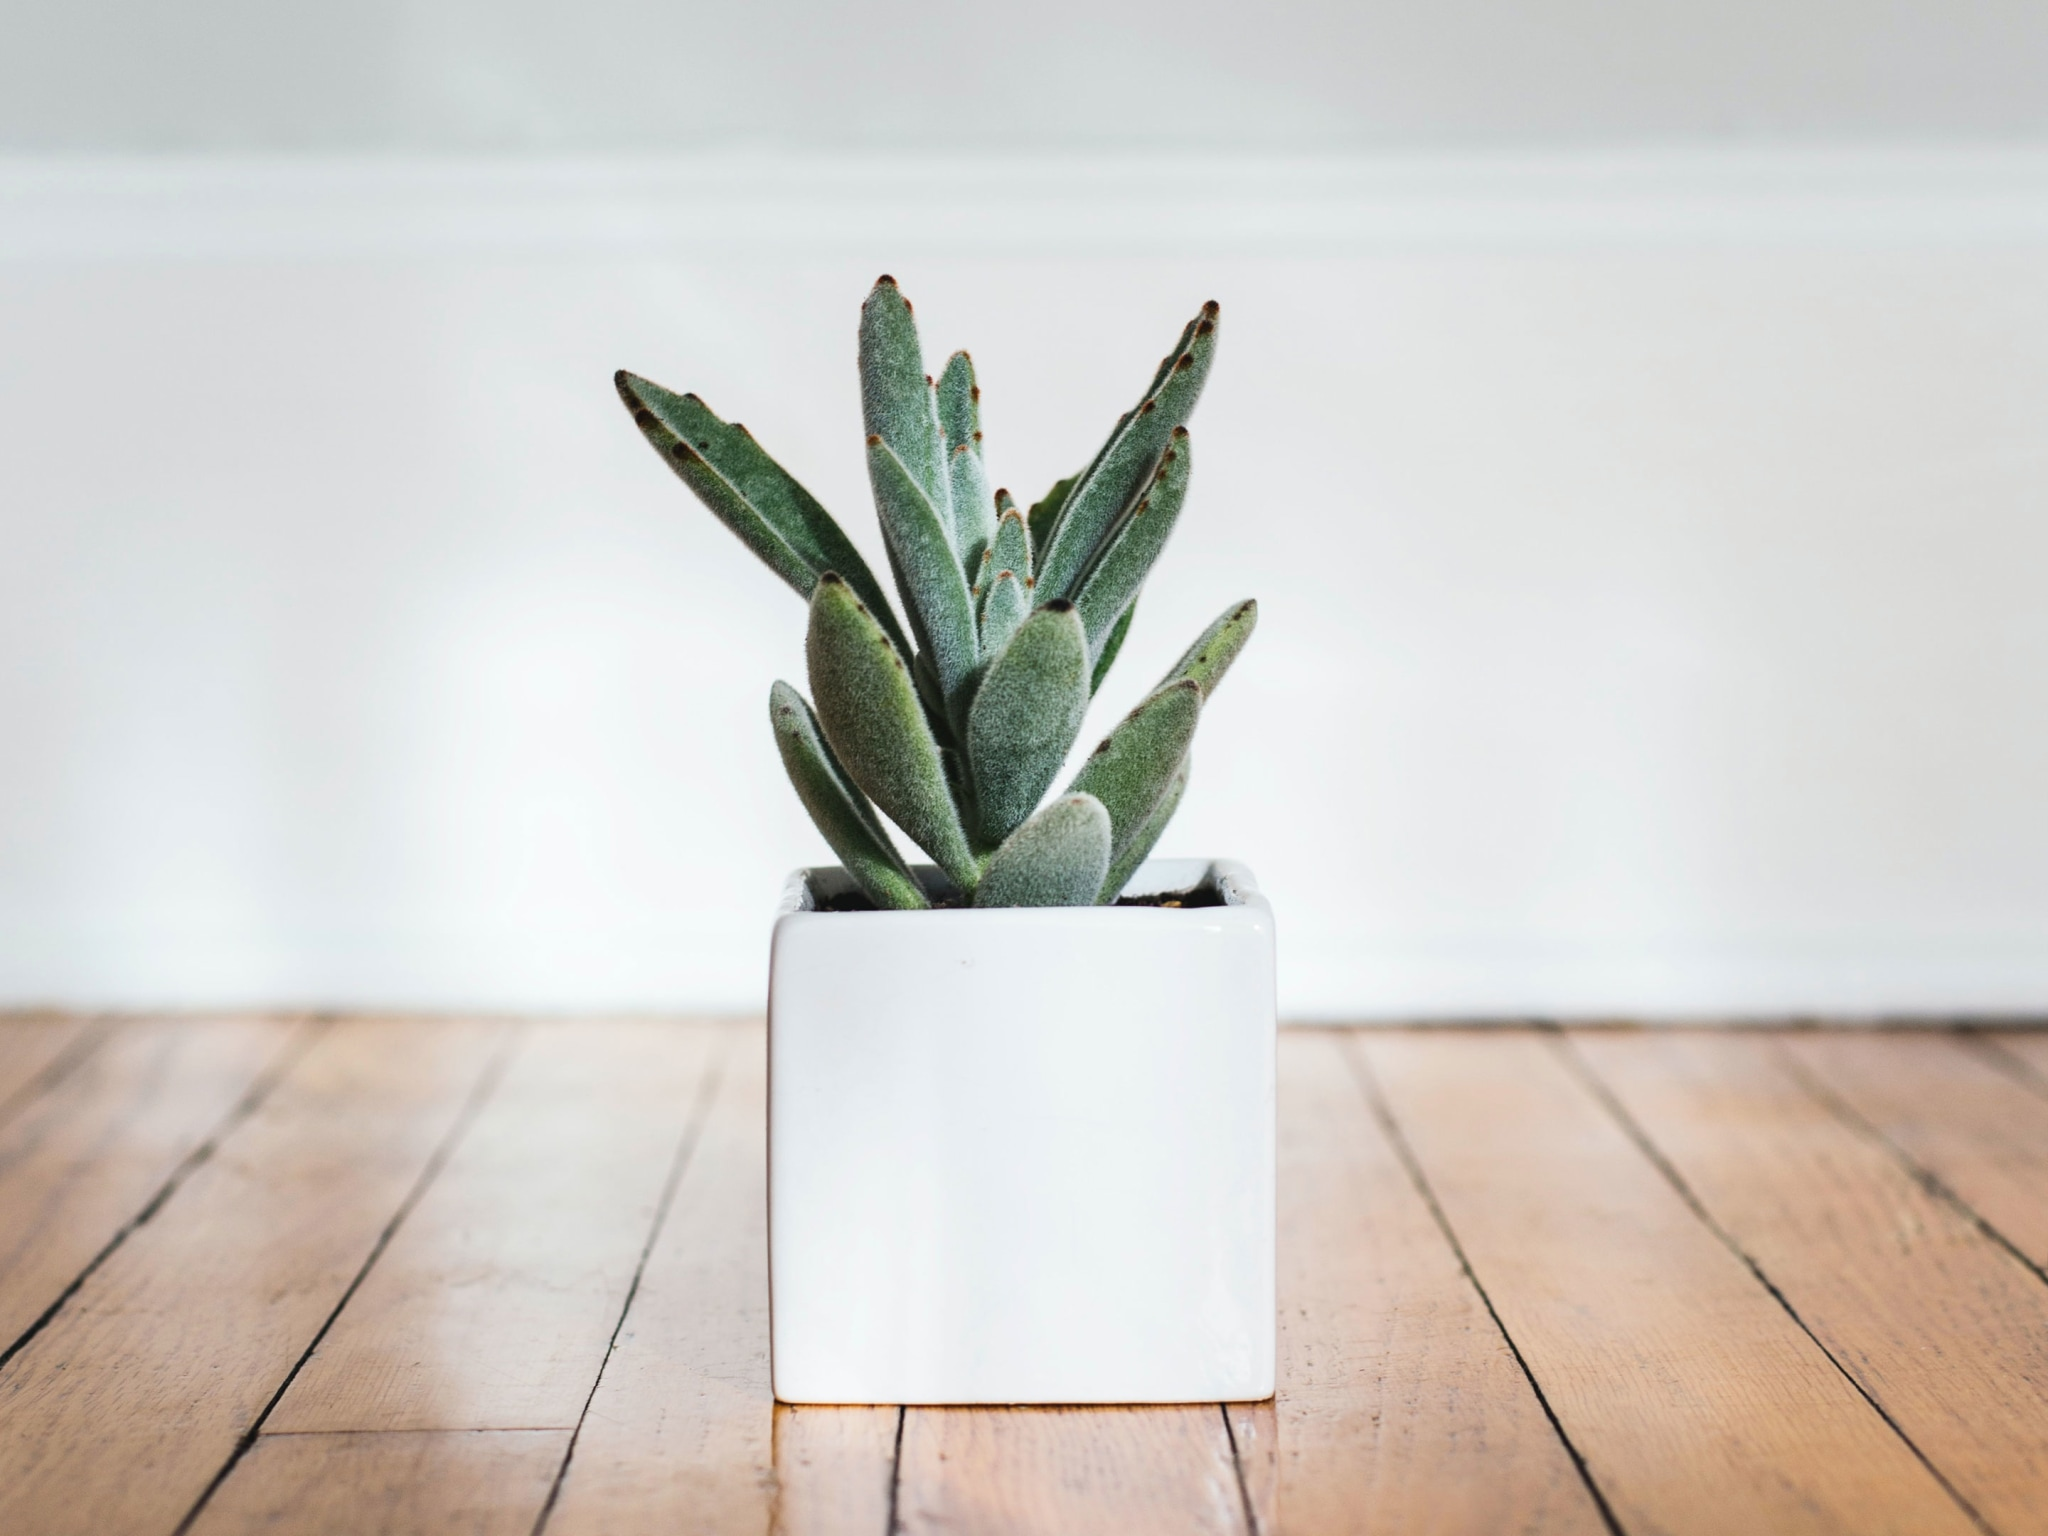 A succulent in a white vase on a wooden floor.